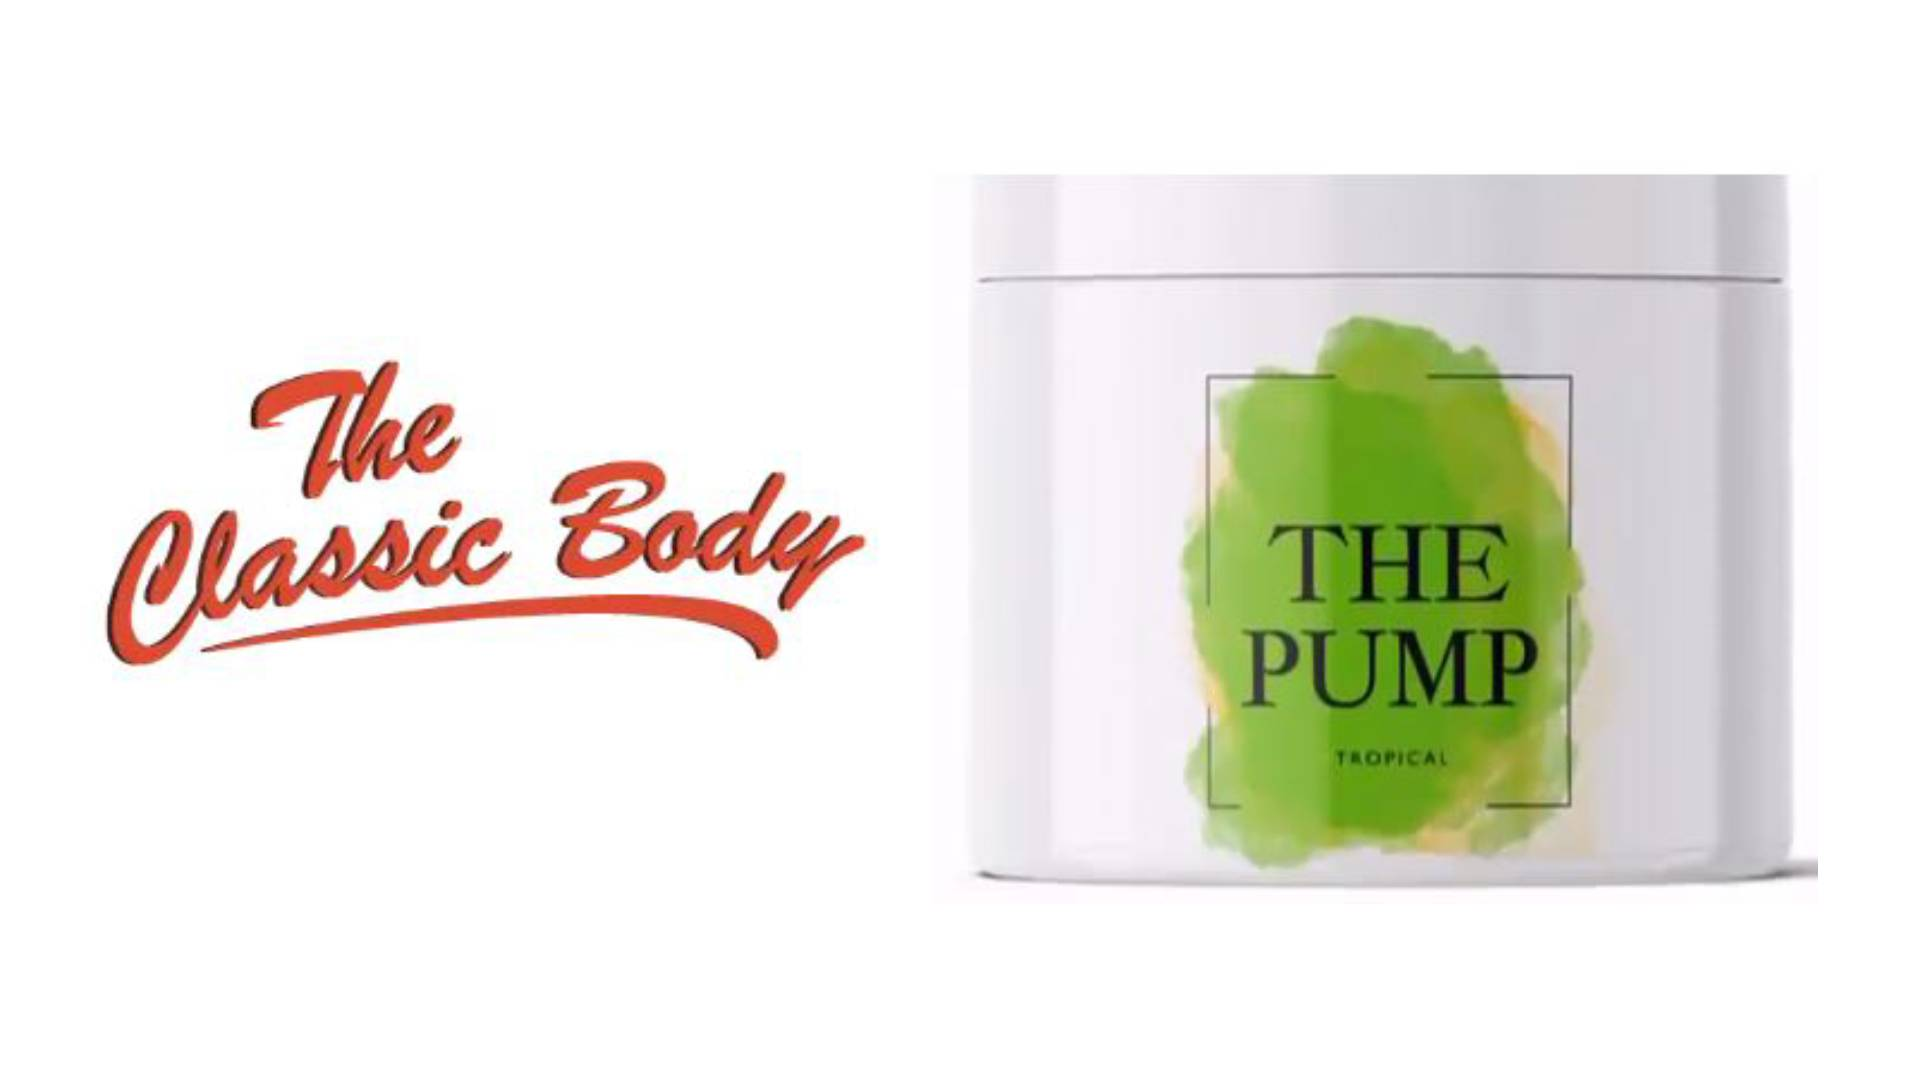 THE PUMP Booster Classic Body Nutrition